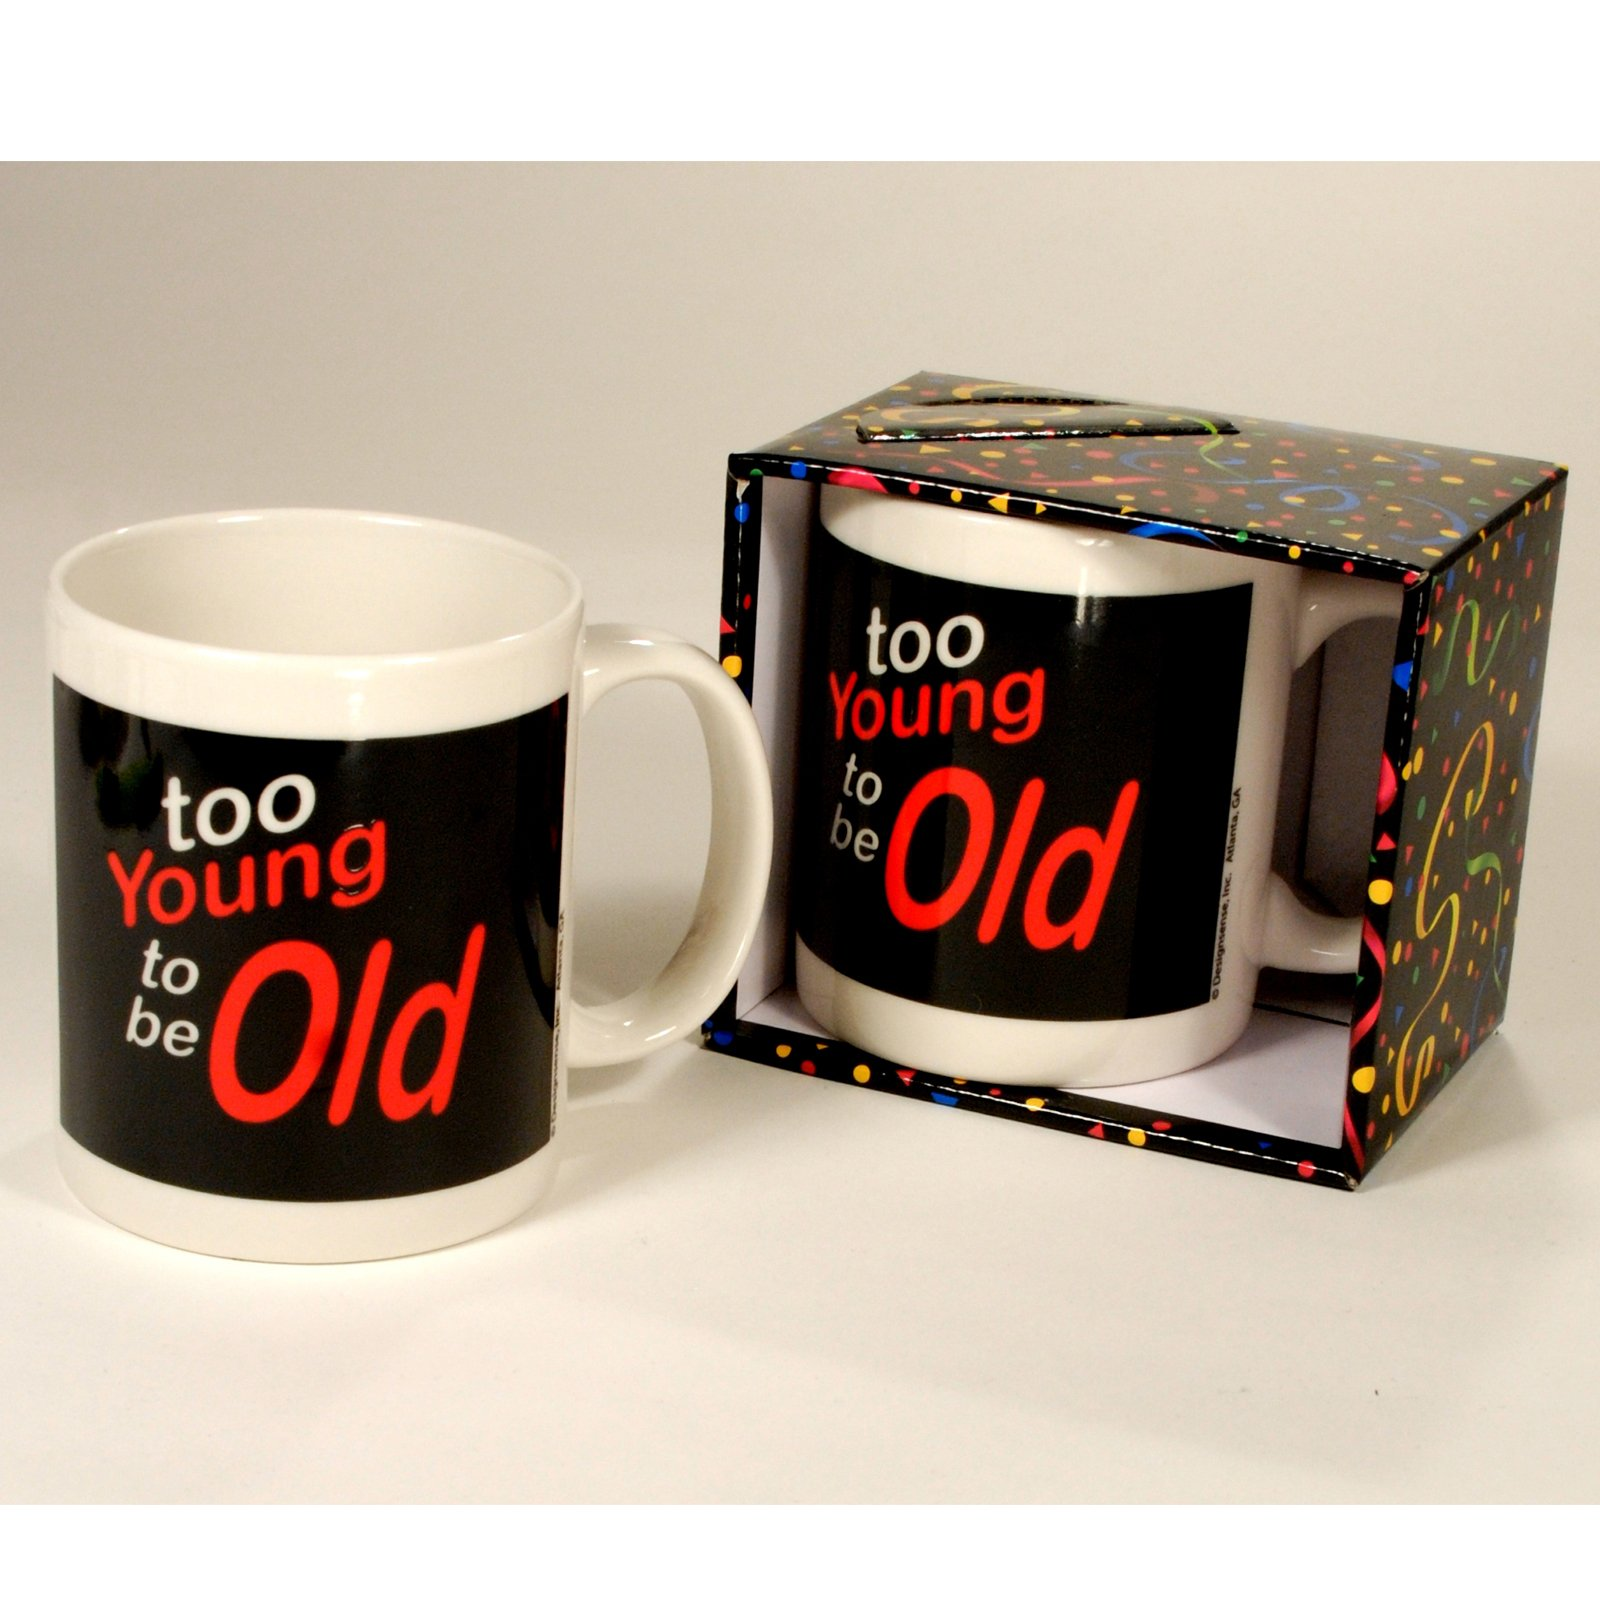 Too Young to be Old Mug